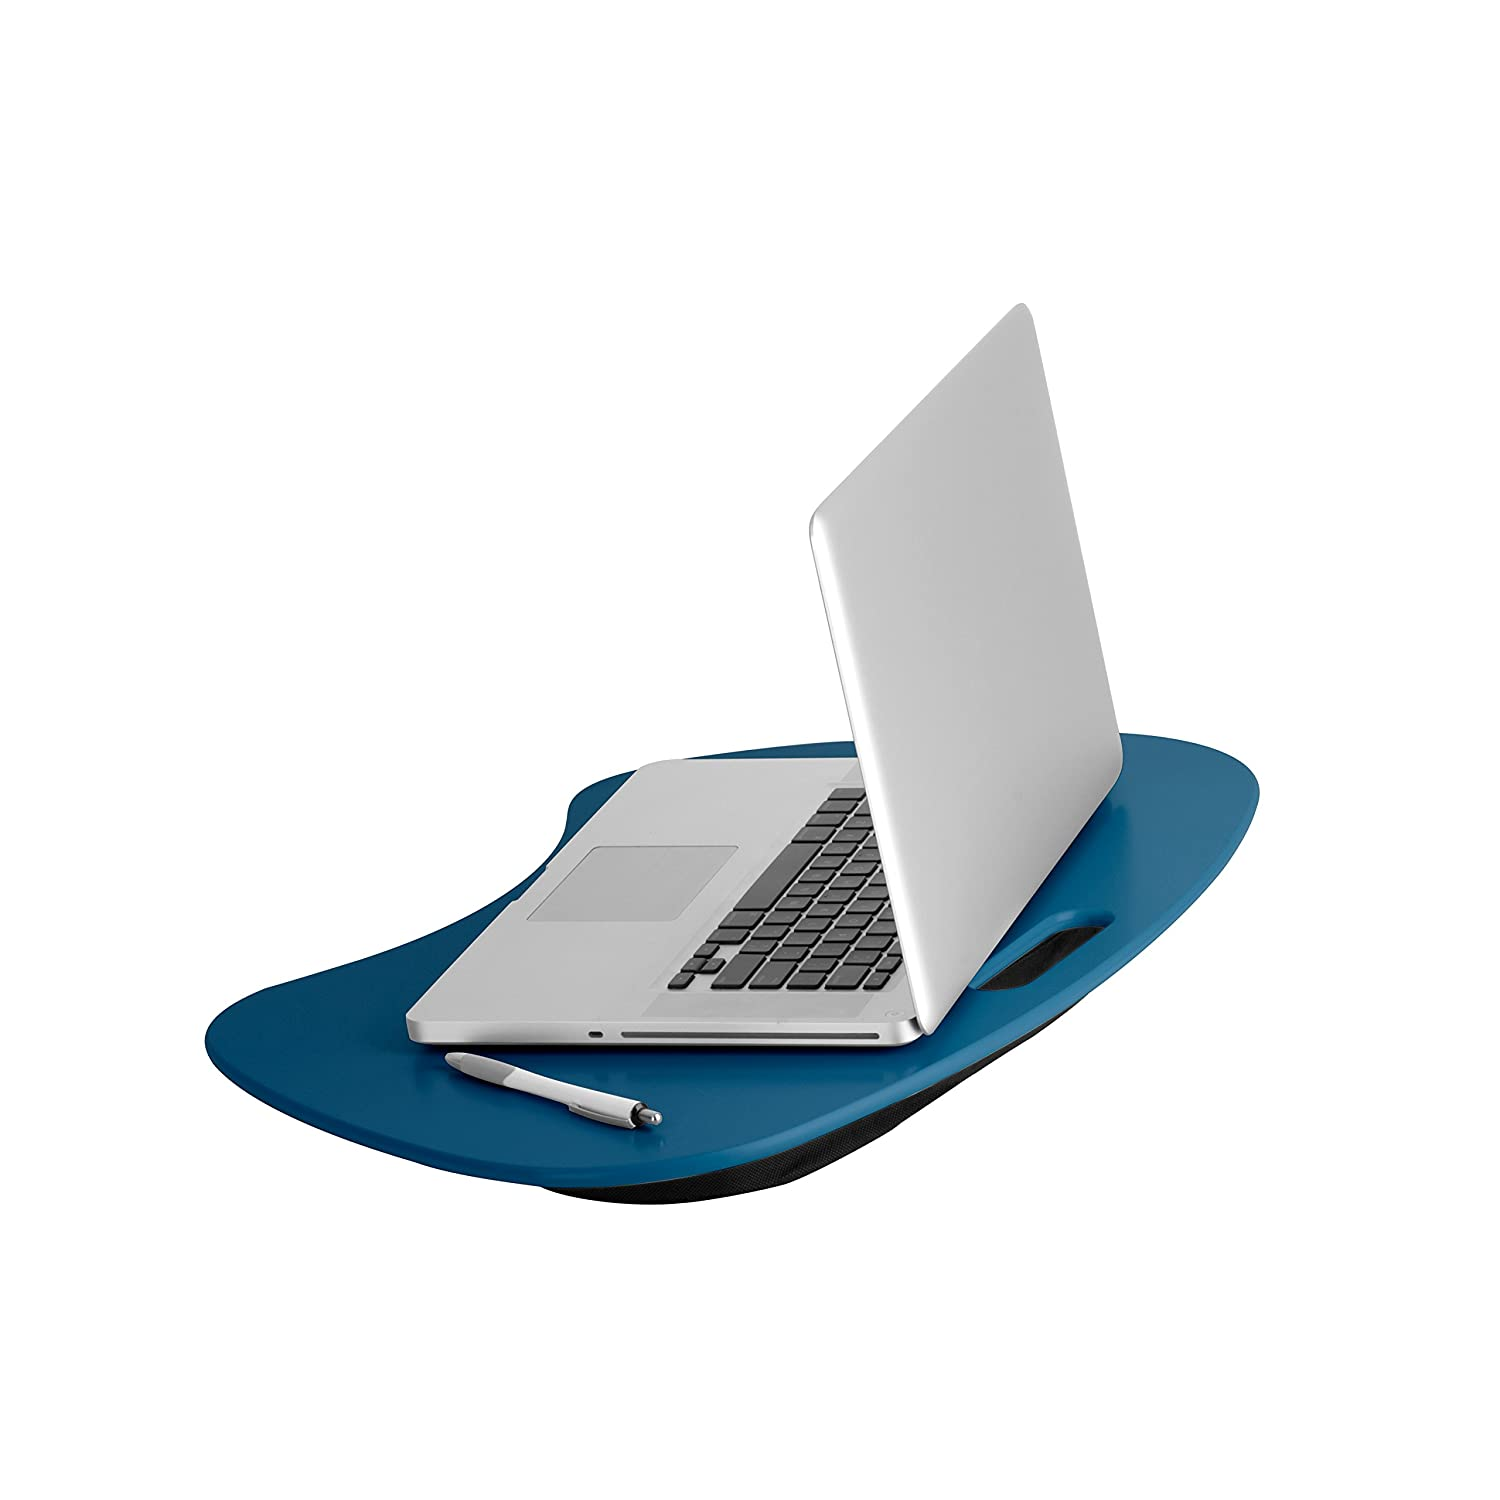 Honey-Can-Do TBL-06321 Portable Laptop Lap Desk with Handle, Indigo Blue, 23 L x 16 W x 2.5 H